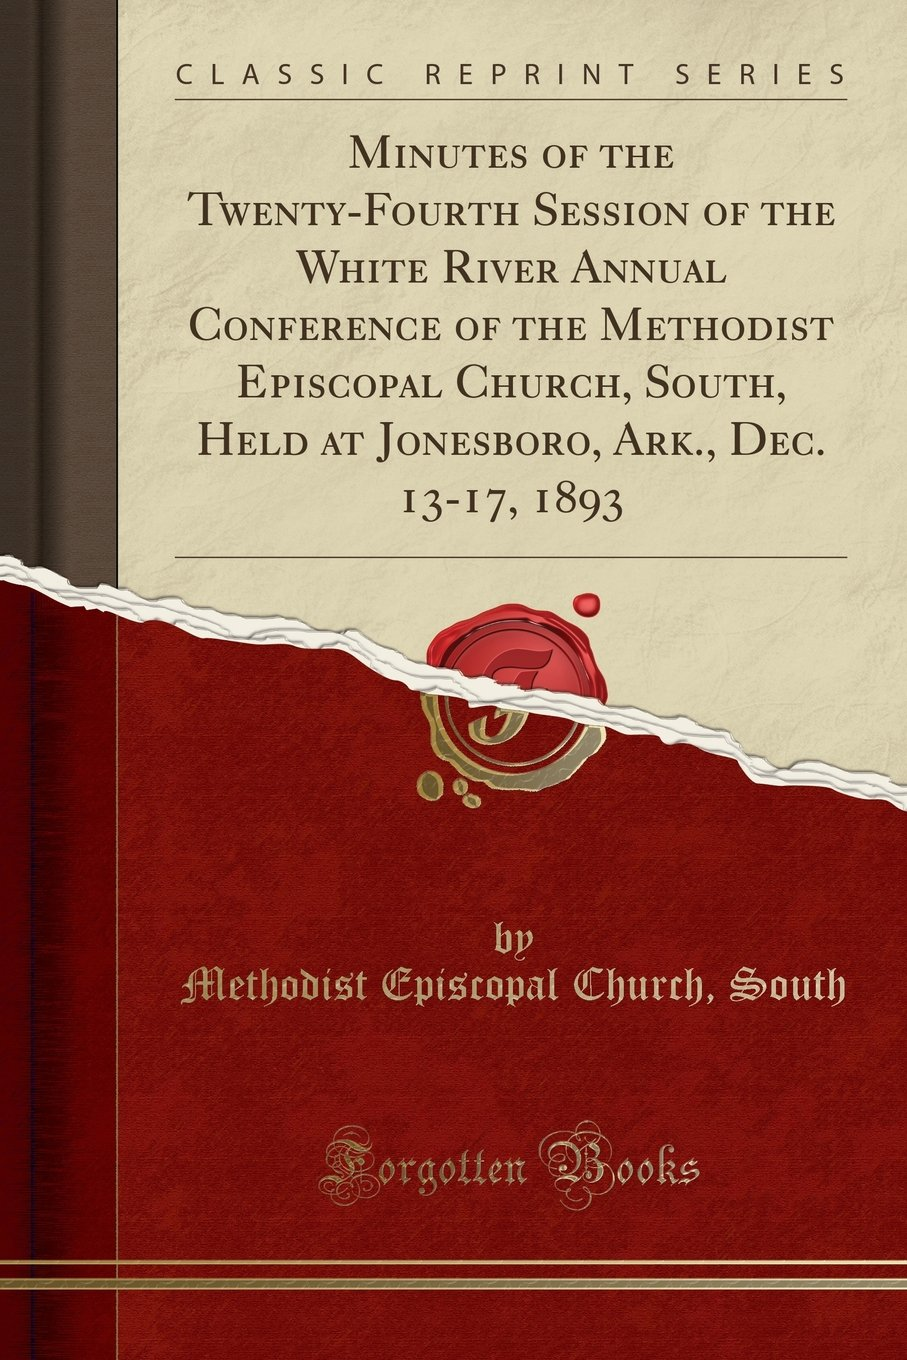 Minutes of the Twenty-Fourth Session of the White River Annual Conference of the Methodist Episcopal Church, South, Held at Jonesboro, Ark., Dec. 13-17, 1893 (Classic Reprint) pdf